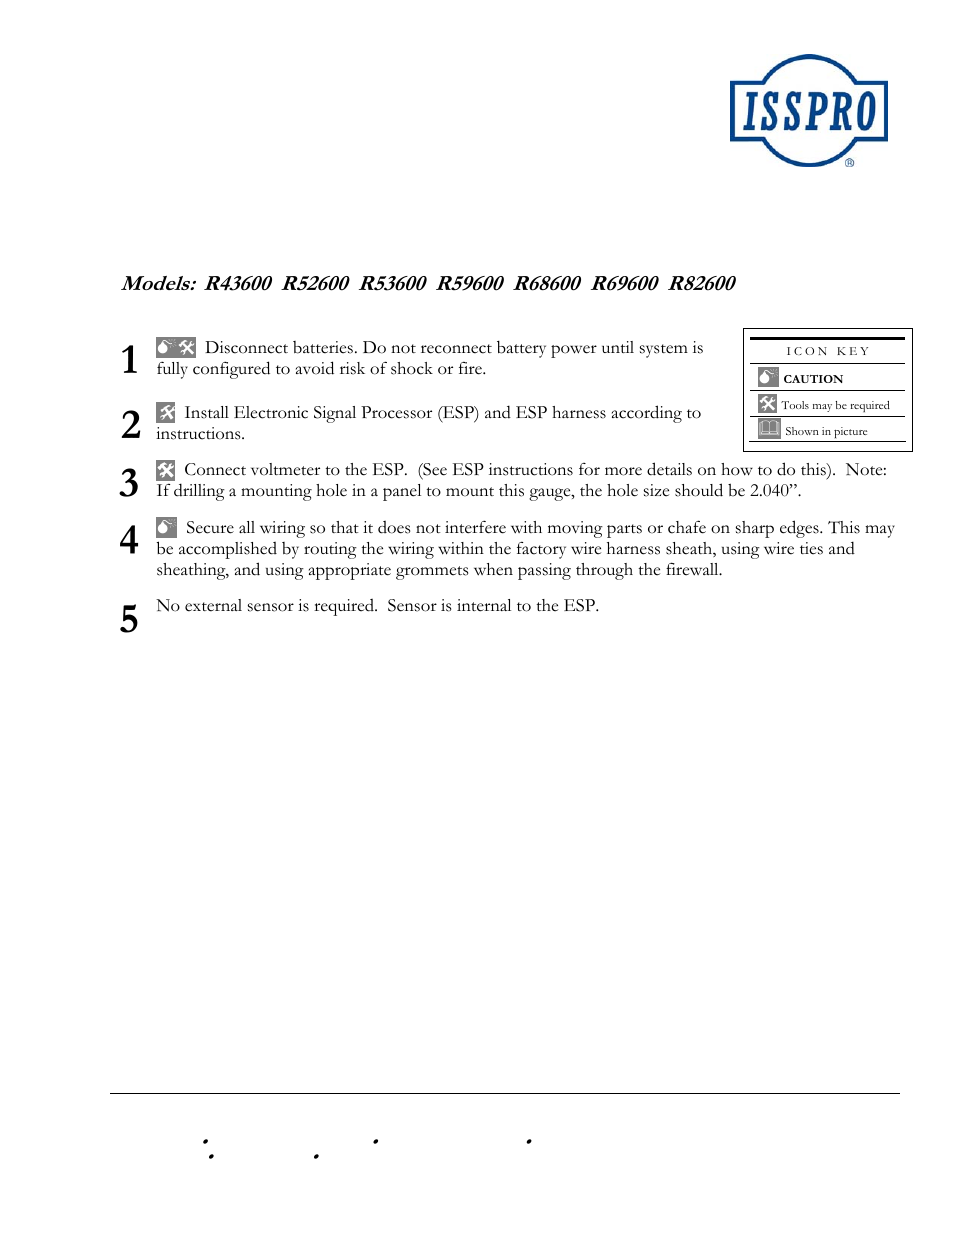 ISSPRO R82600 User Manual | 1 page | Also for: R53600 ... on